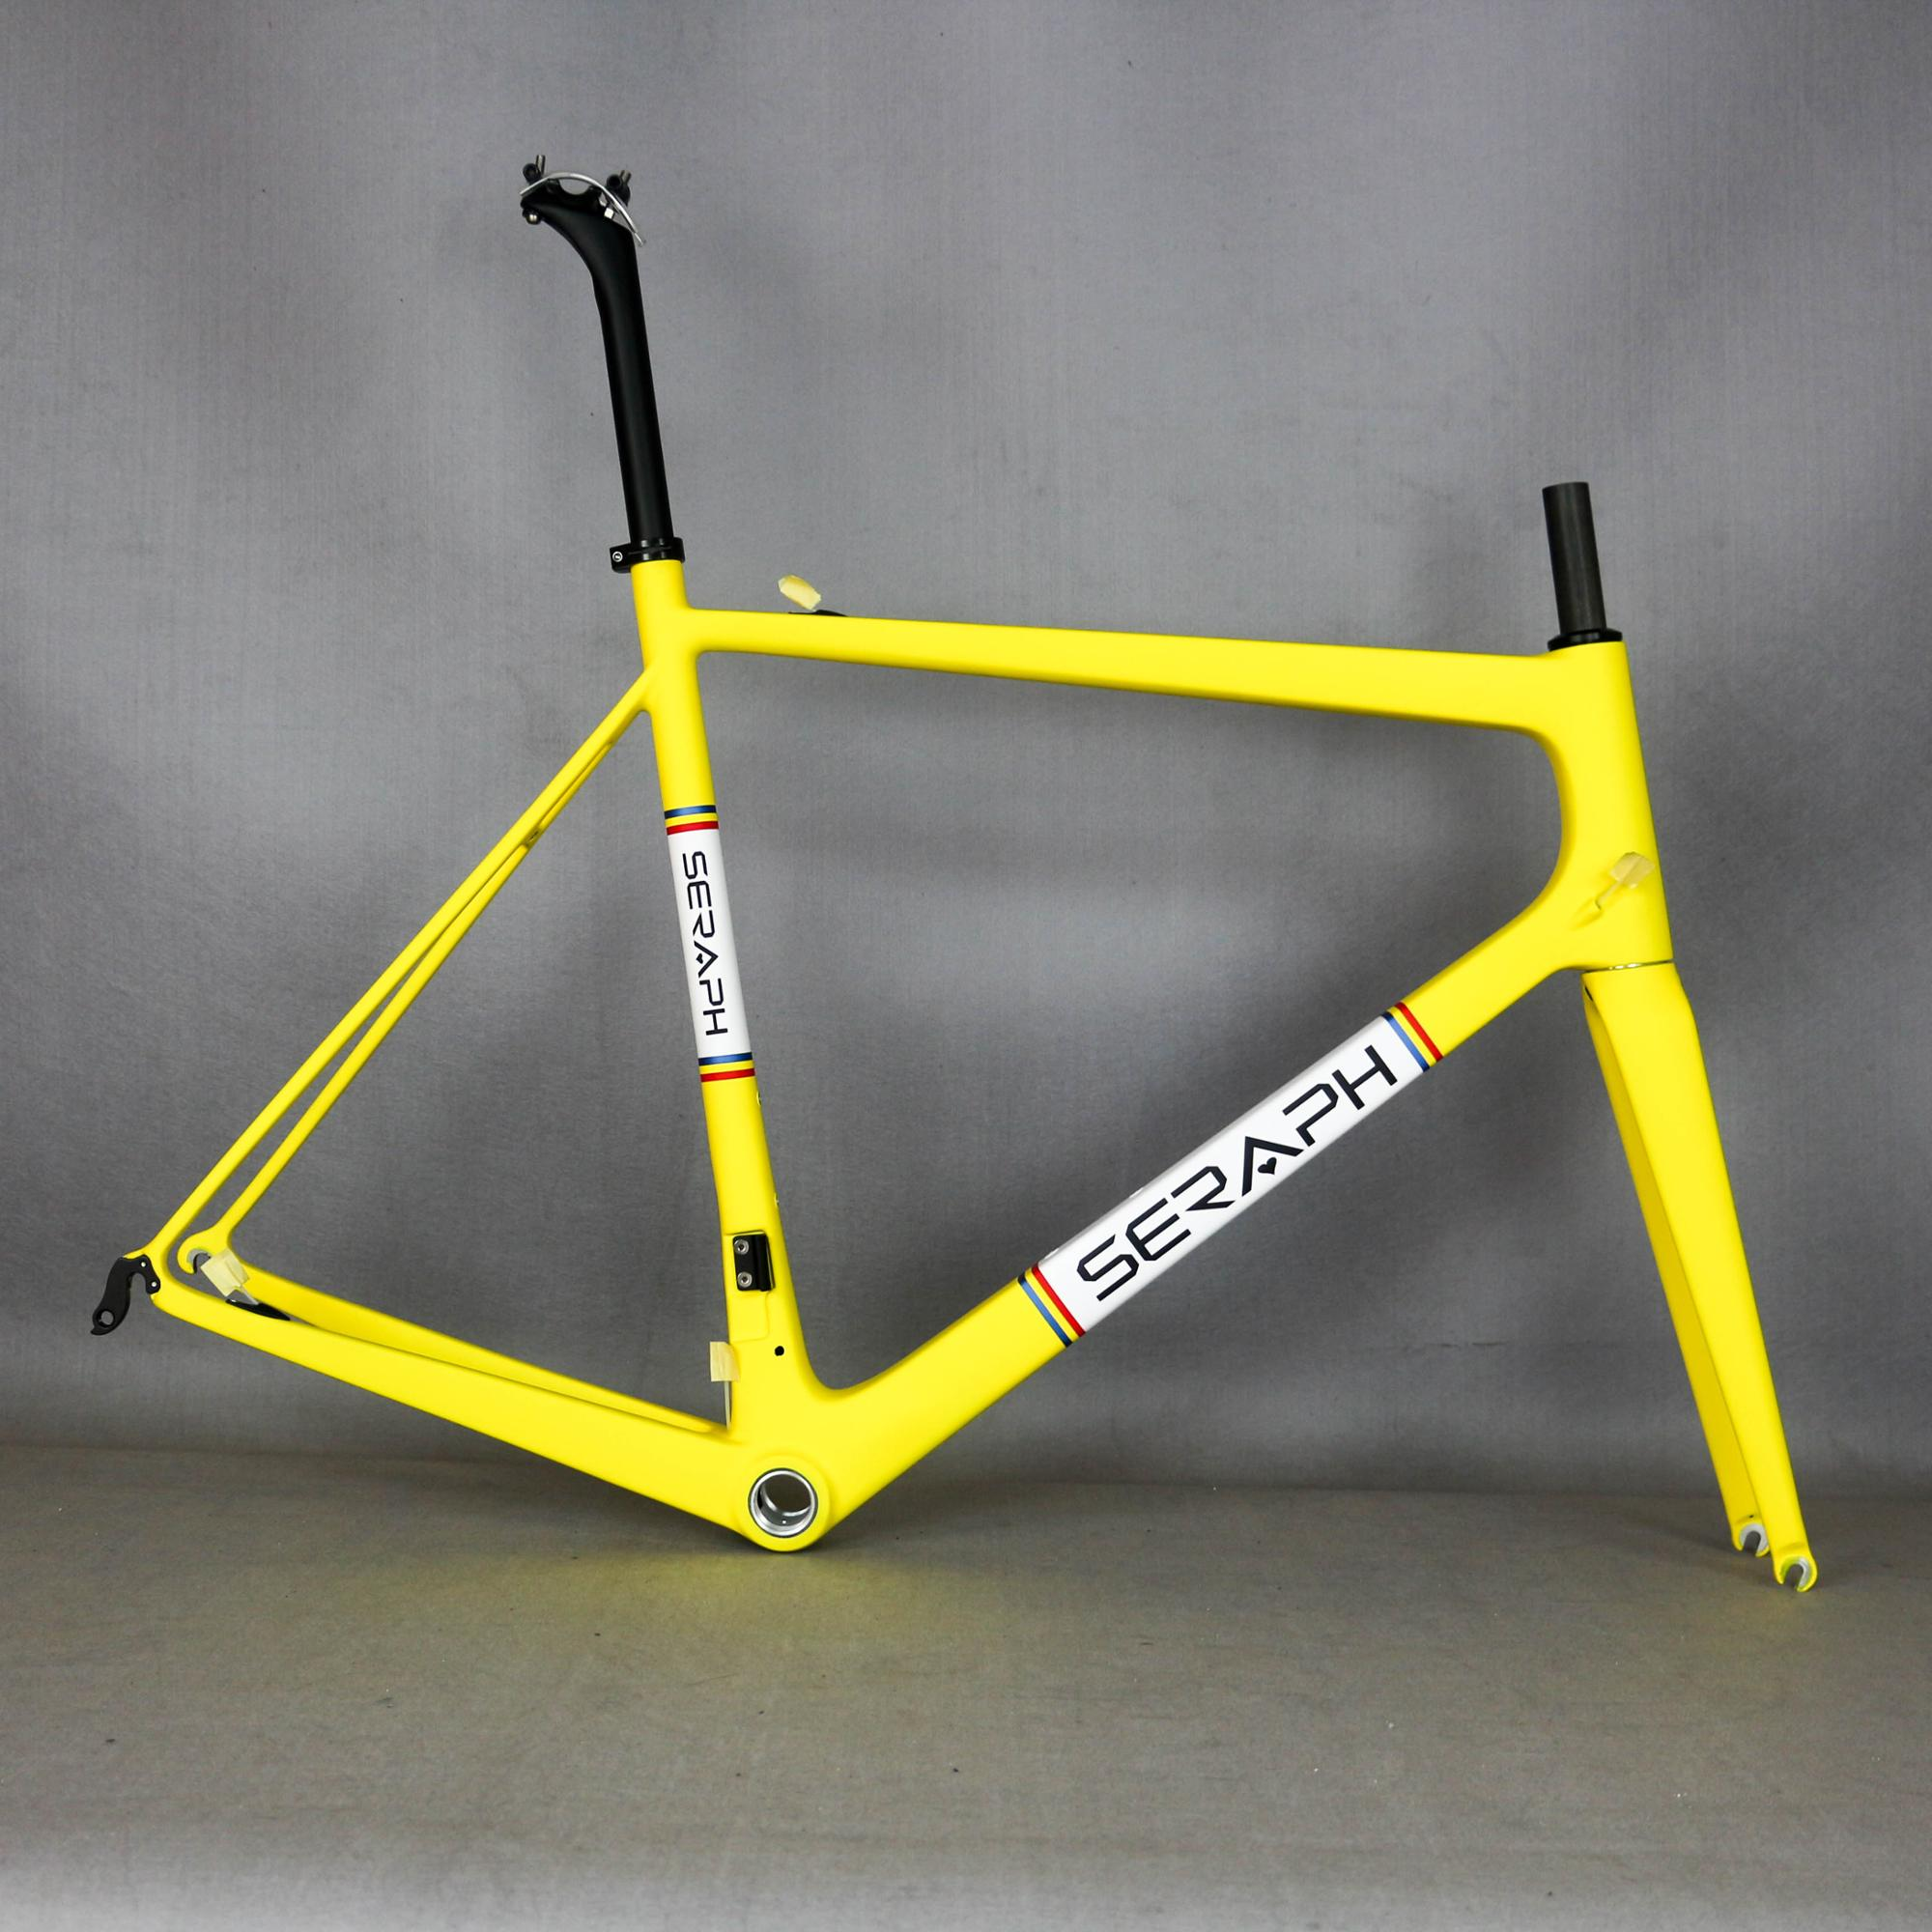 Di2 Compatible Super Light T1000 Carbon Fiber Road Bike Frame Hot Model FM686 Carbon Bicycle Frame From China